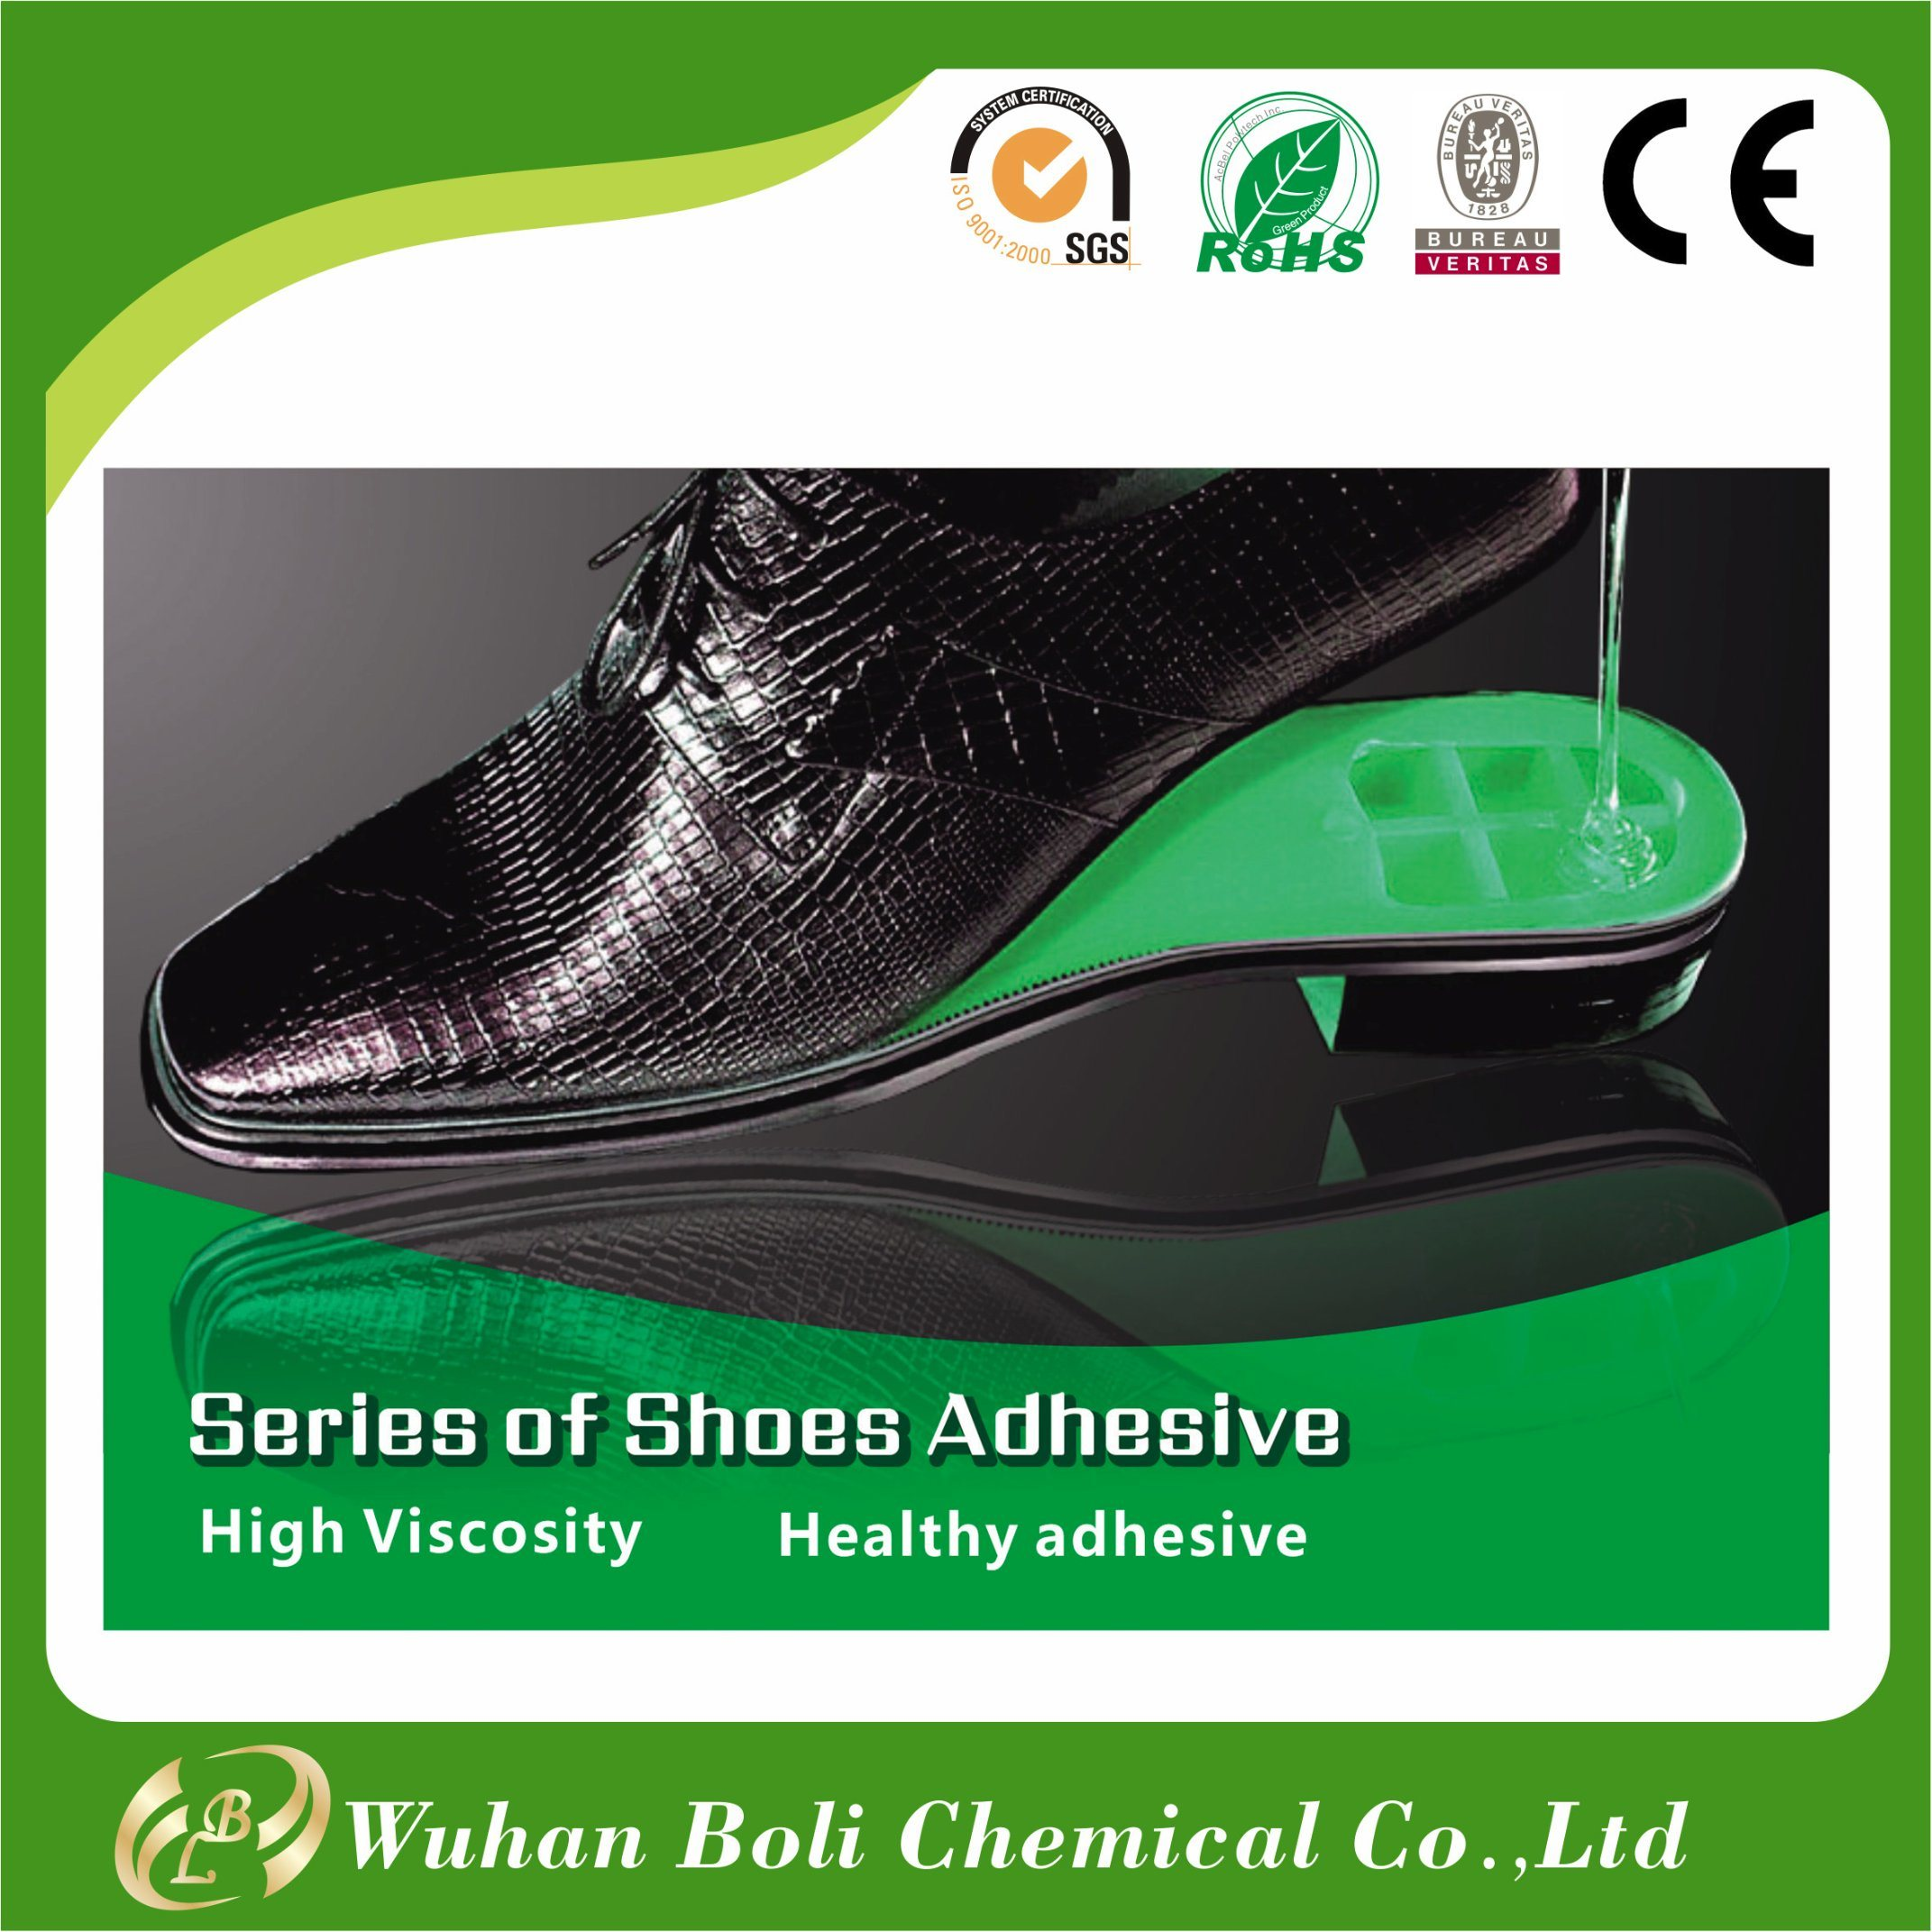 China Supplier Best Selling Polyurethane PU Adhesive for Shoes Footwear Uppers Adhesive Glue